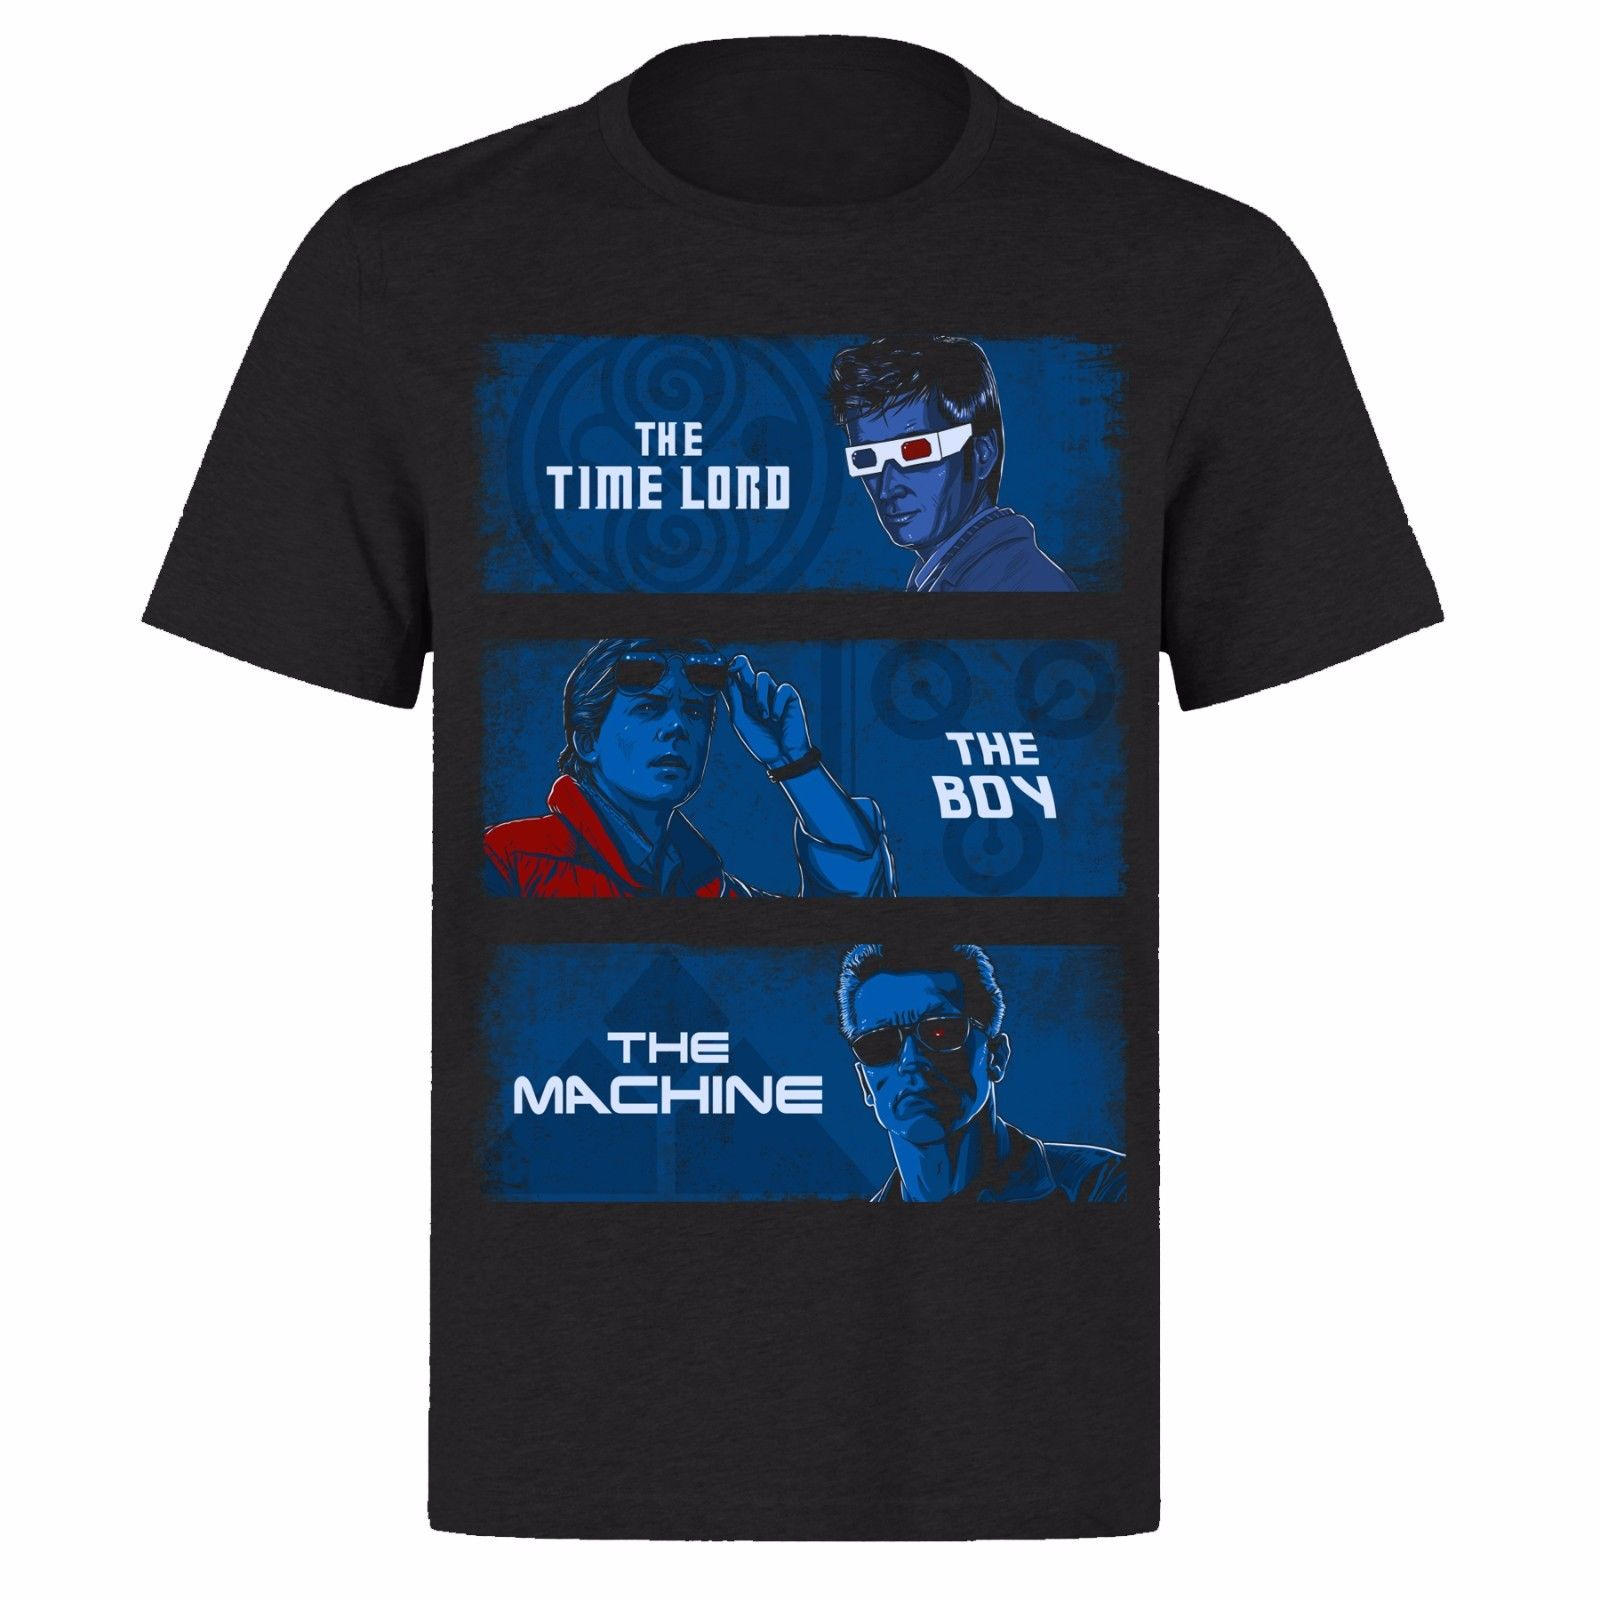 TIME TRAVELERS THE TIME LORD THE BOY THE MACHINE UNISEX BLACK PH52 T-SHIRT Print T Shirts Men Hot Selling 100 % Cotton